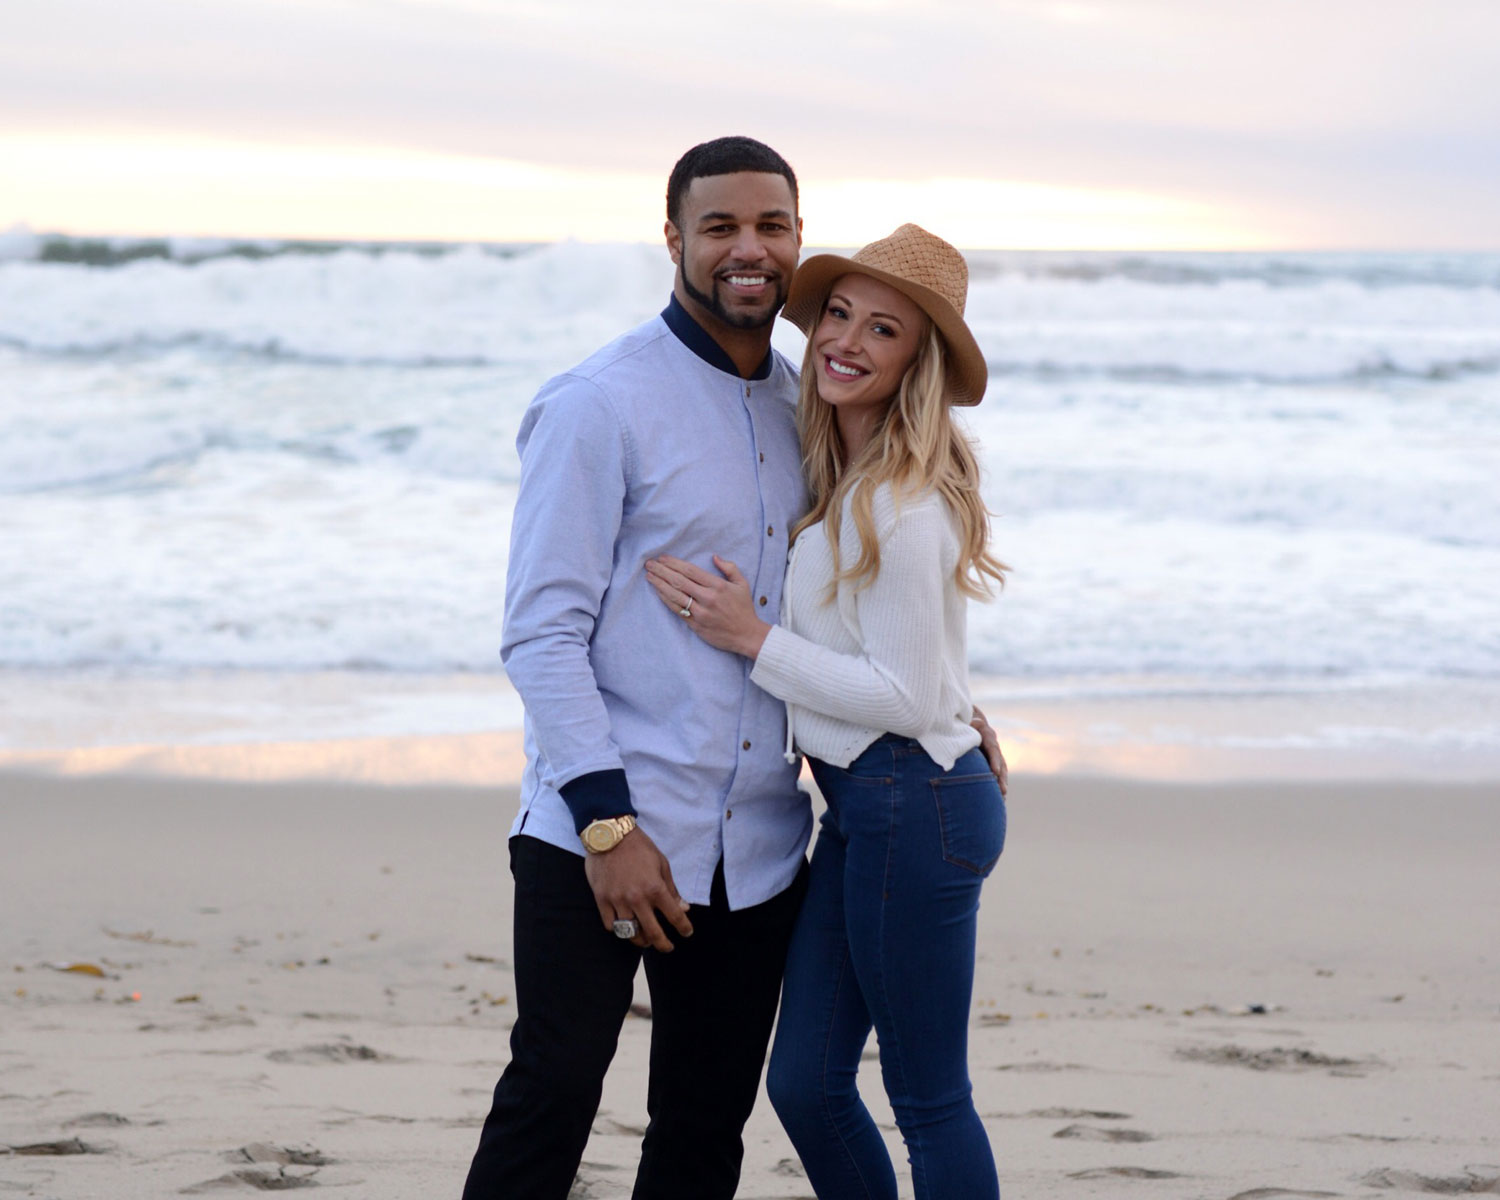 golden tate marries elise pollard in mexico wedding exclusive